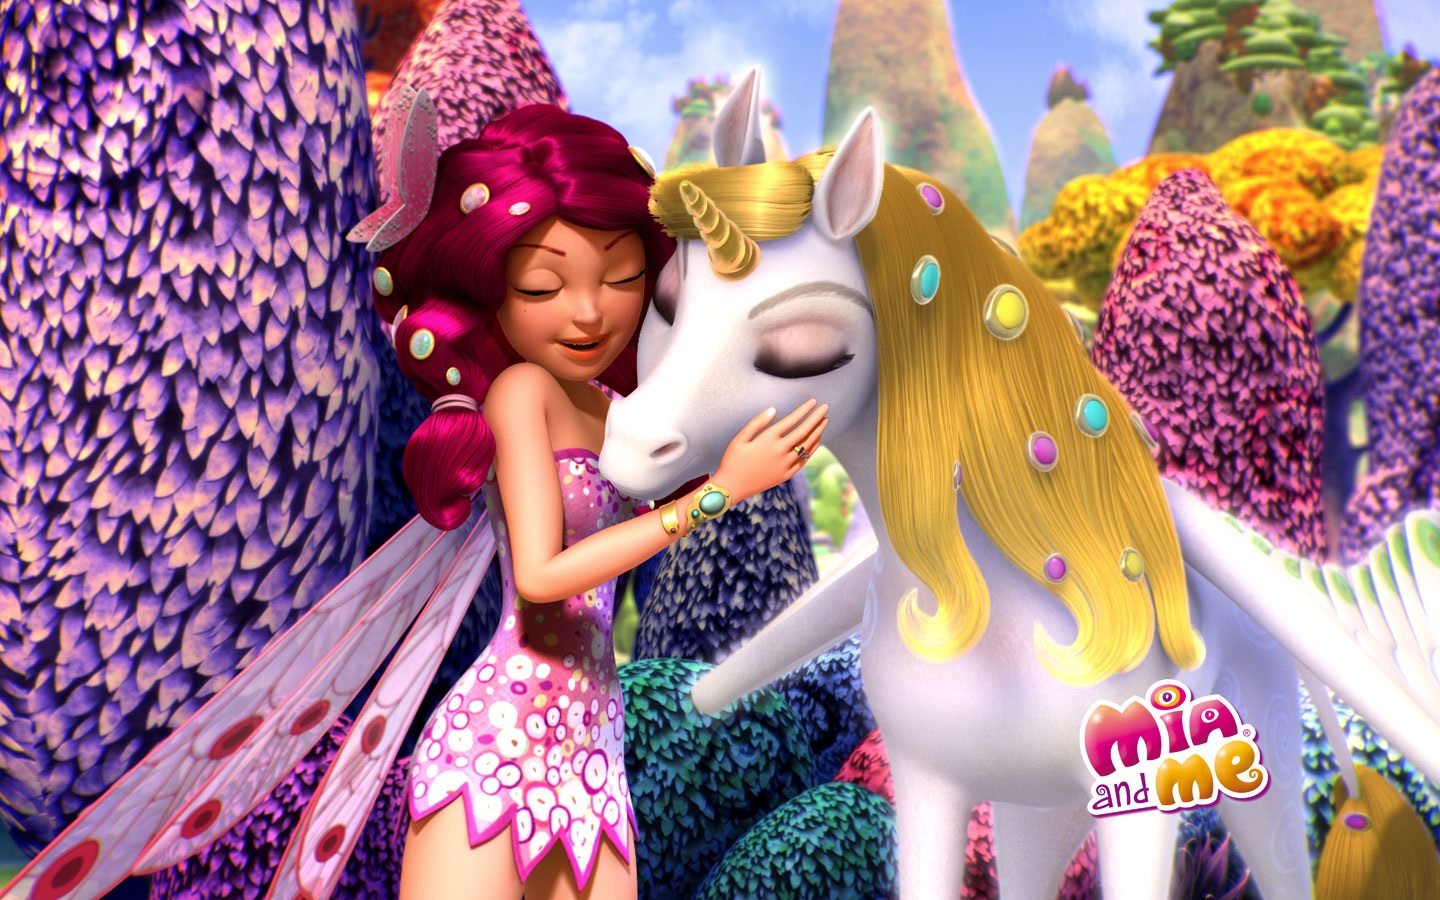 Emmatheunicron Queen Unicorn And Jessowey Images Mia And Me Hd